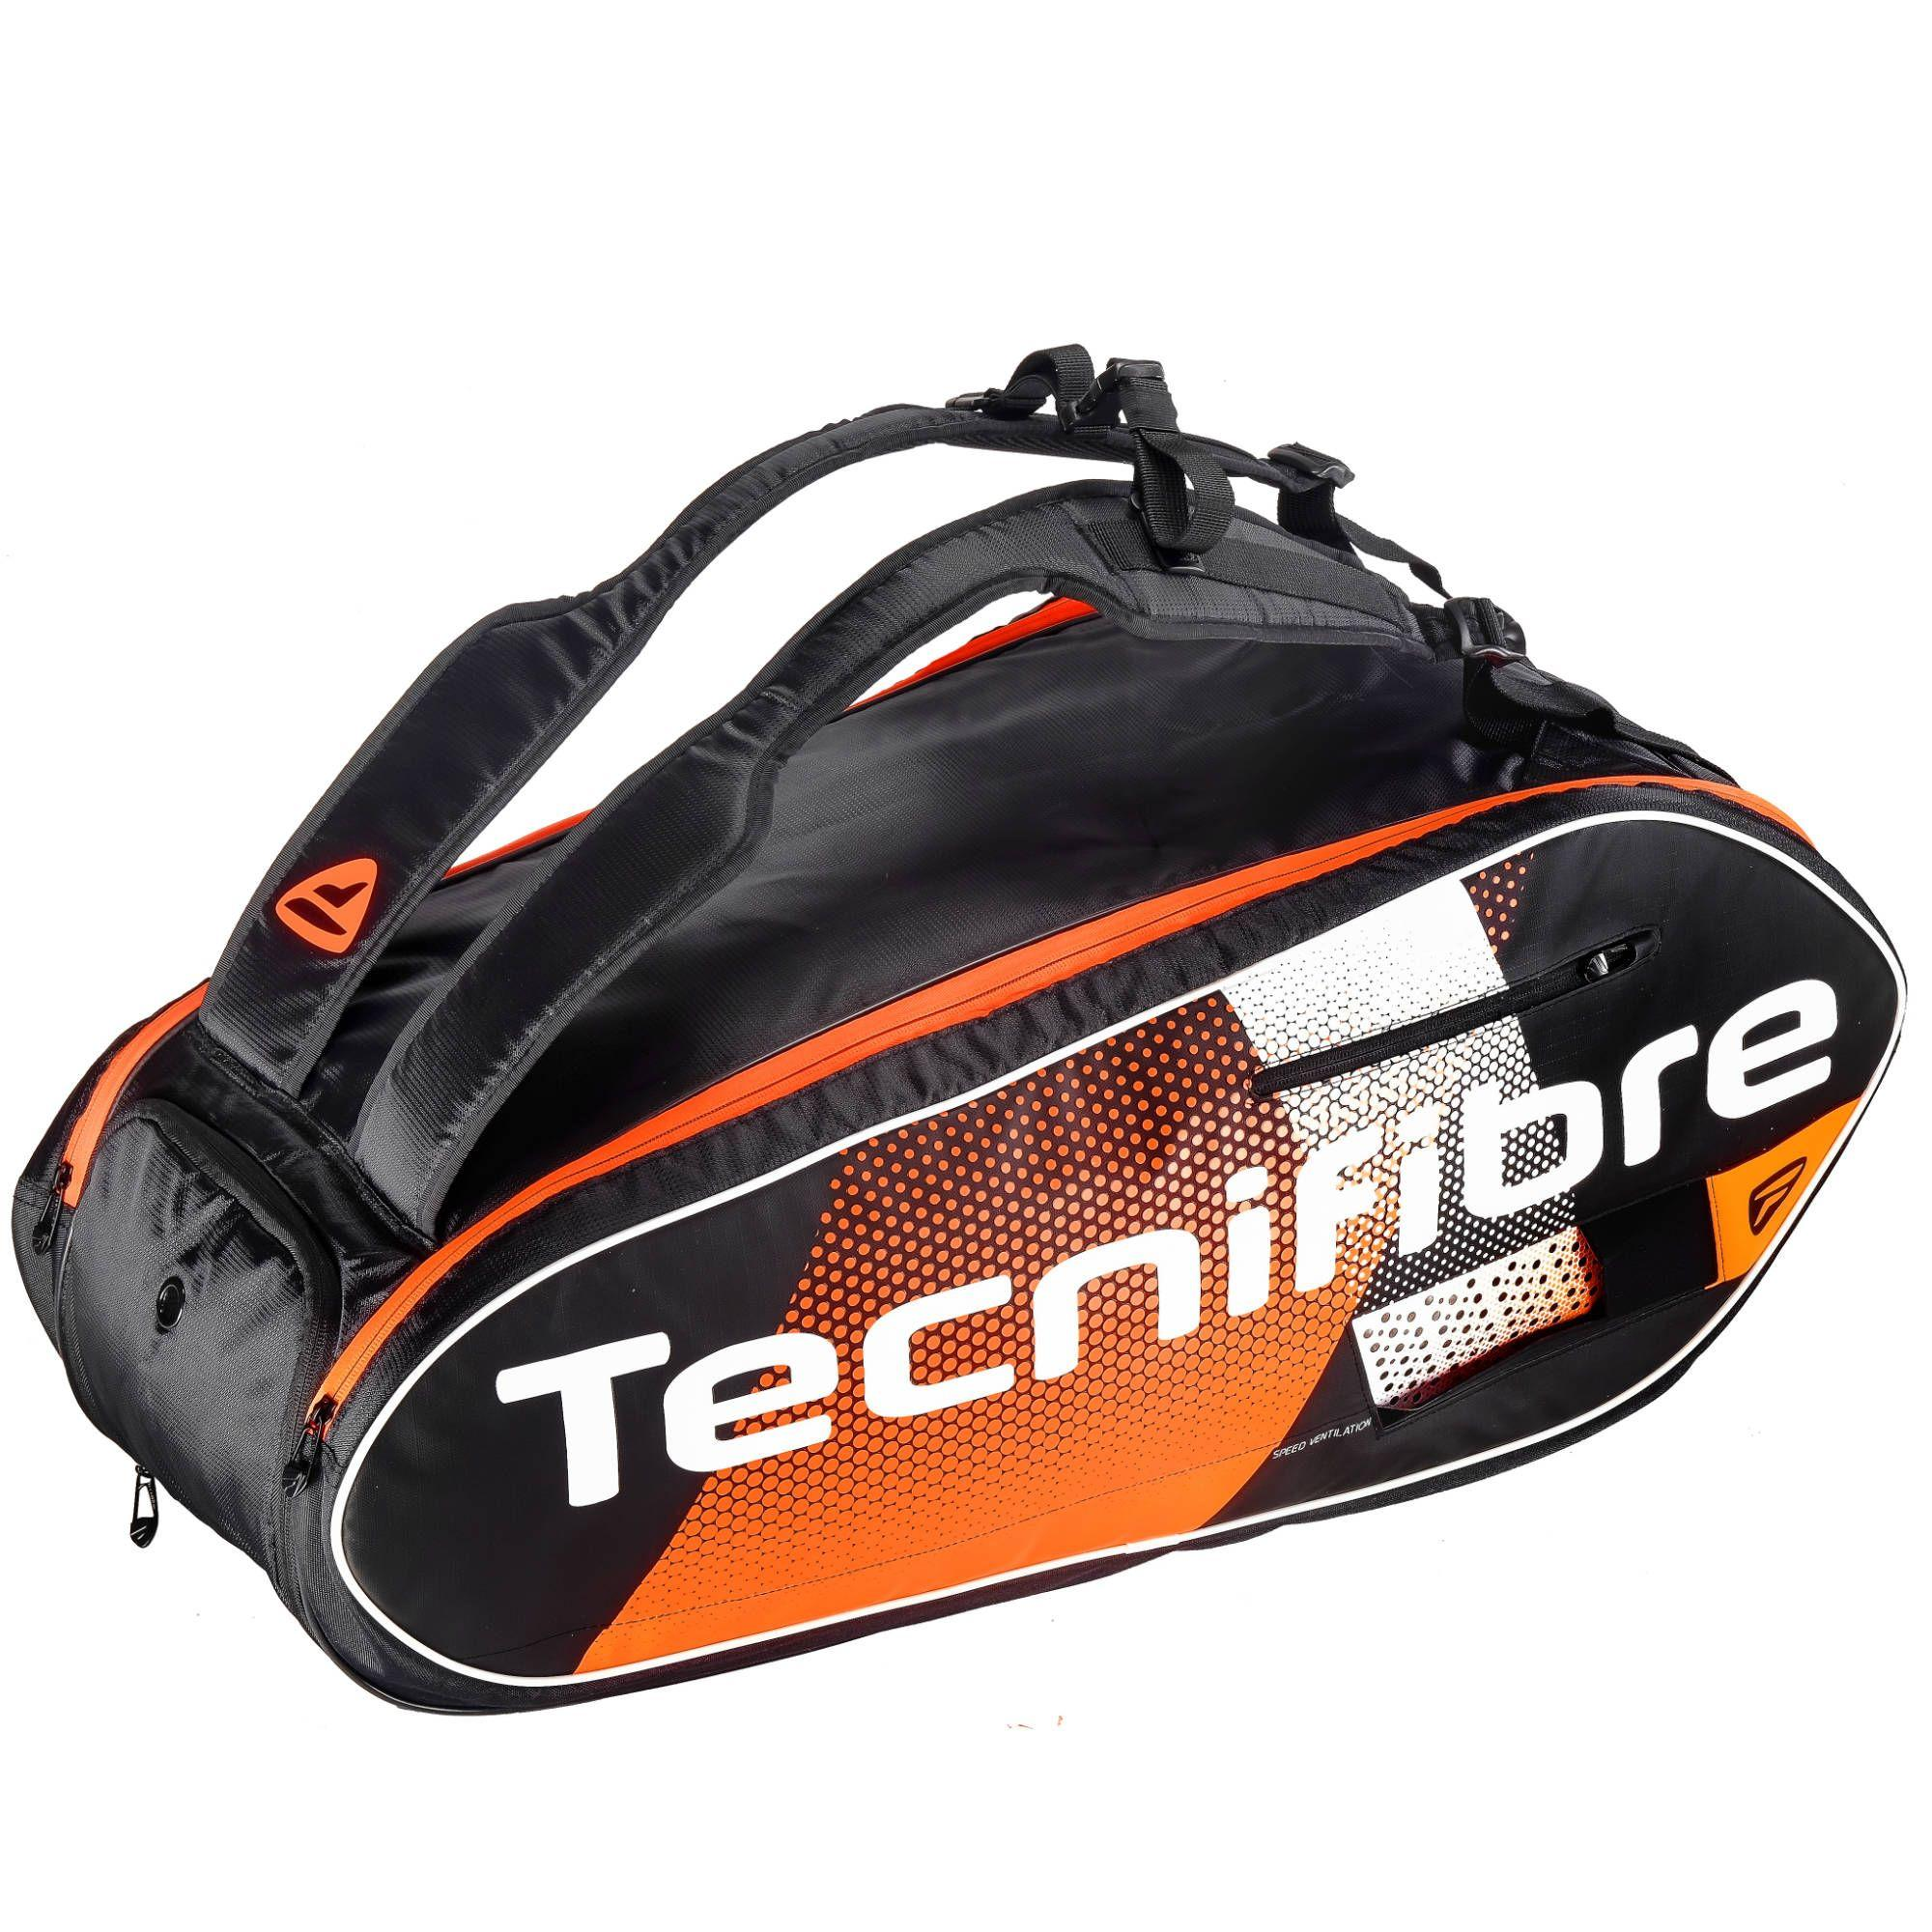 Tecnifibre Air Endurance 9R Colour: Black/Orange